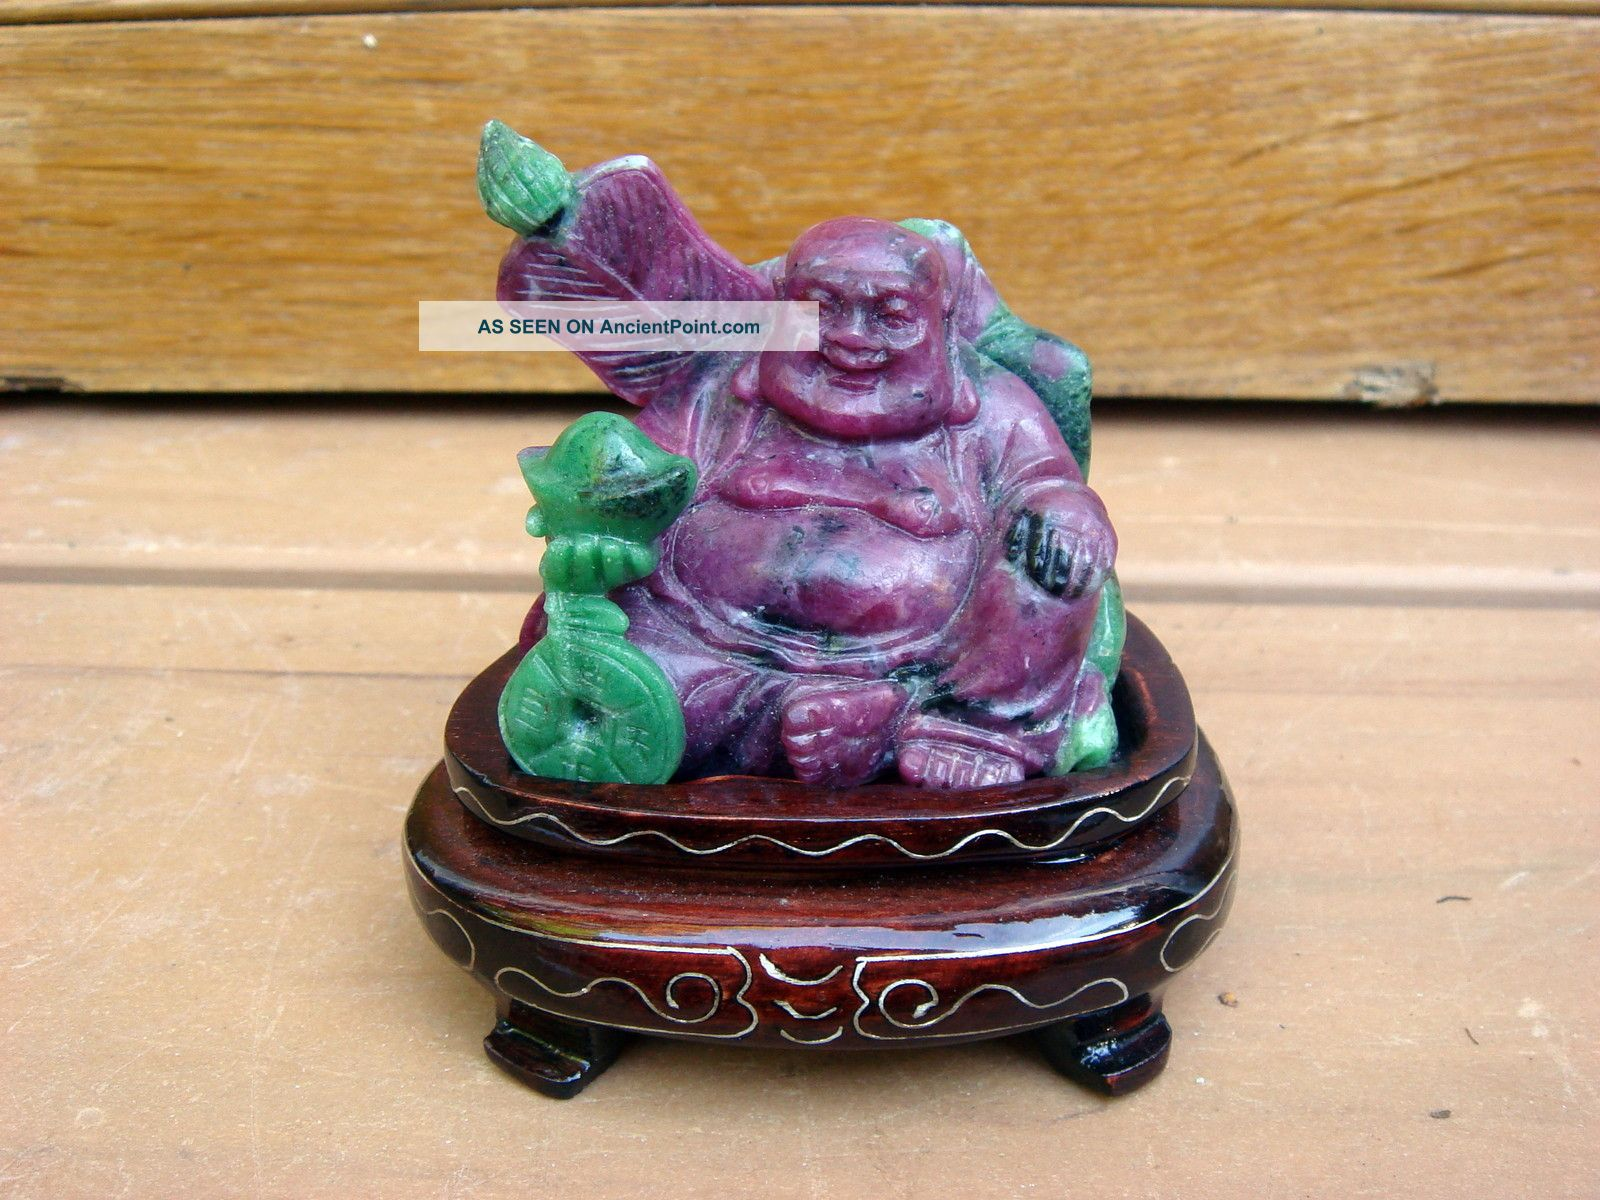 Antique 20c Chinese Asian Ruby Zoisite Carving Seated Buddha Statue On Stand Buddha photo